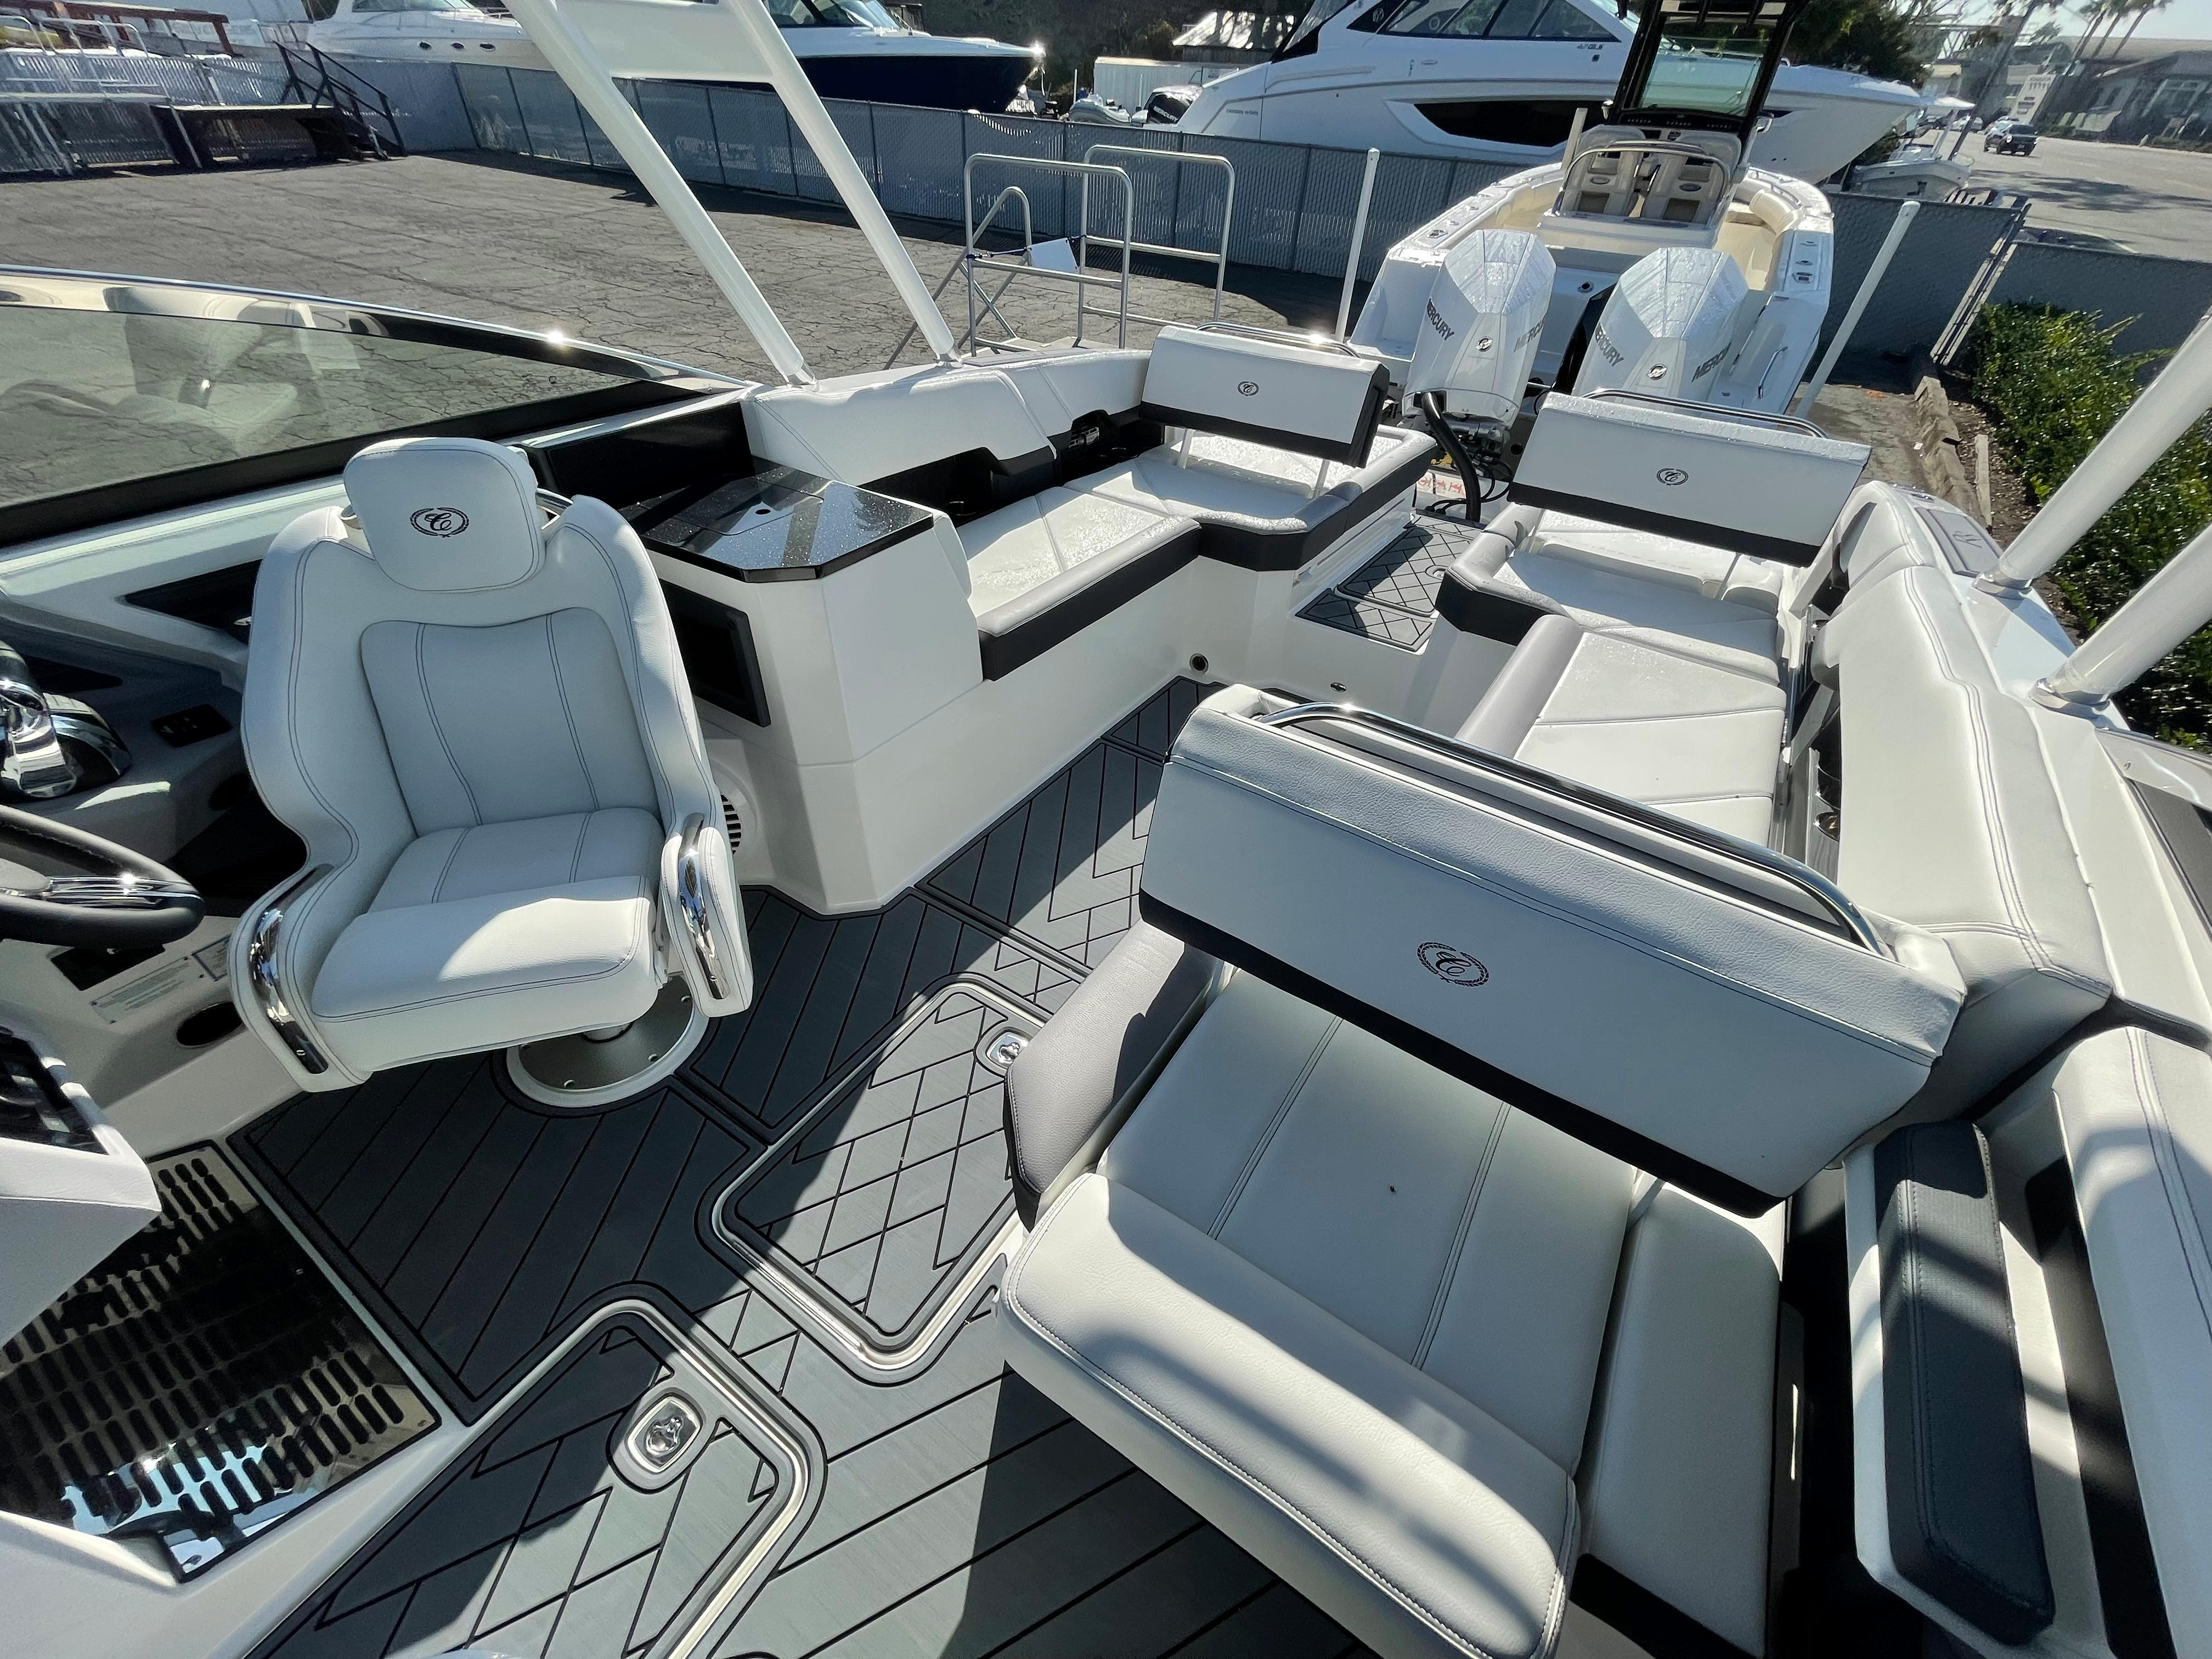 2022 Cobalt R8 Outboard #C8002G inventory image at Sun Country Coastal in Newport Beach